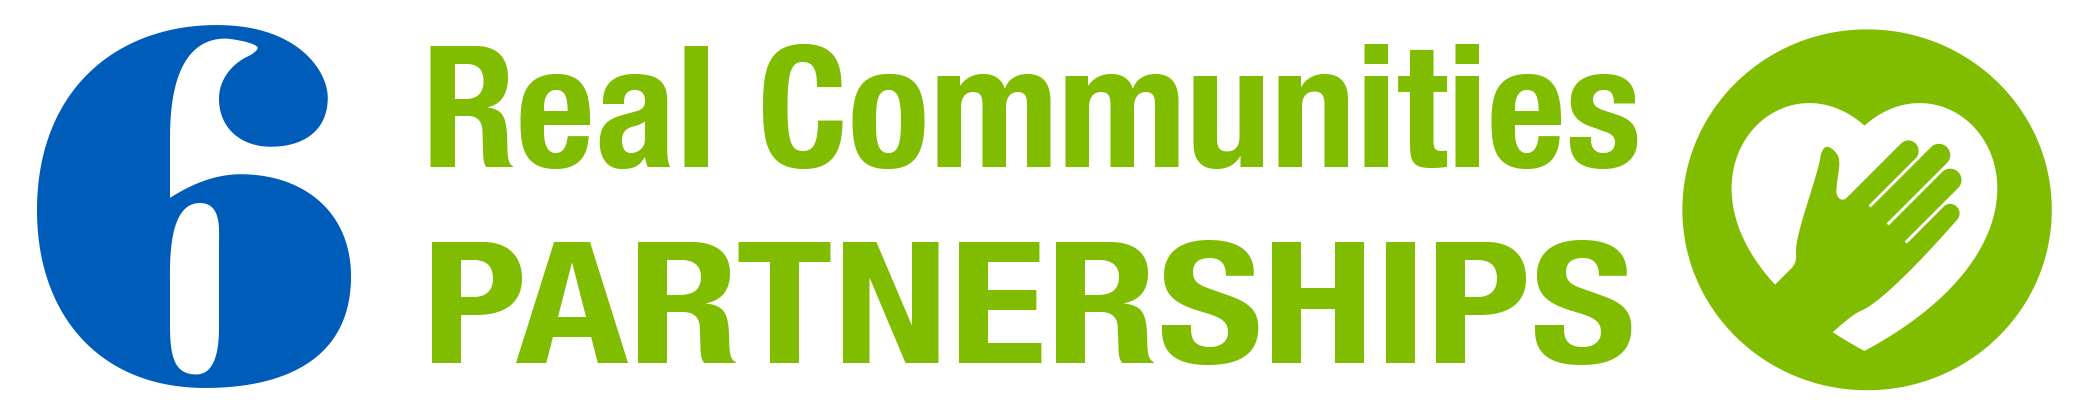 6 Real Communities Partnerships